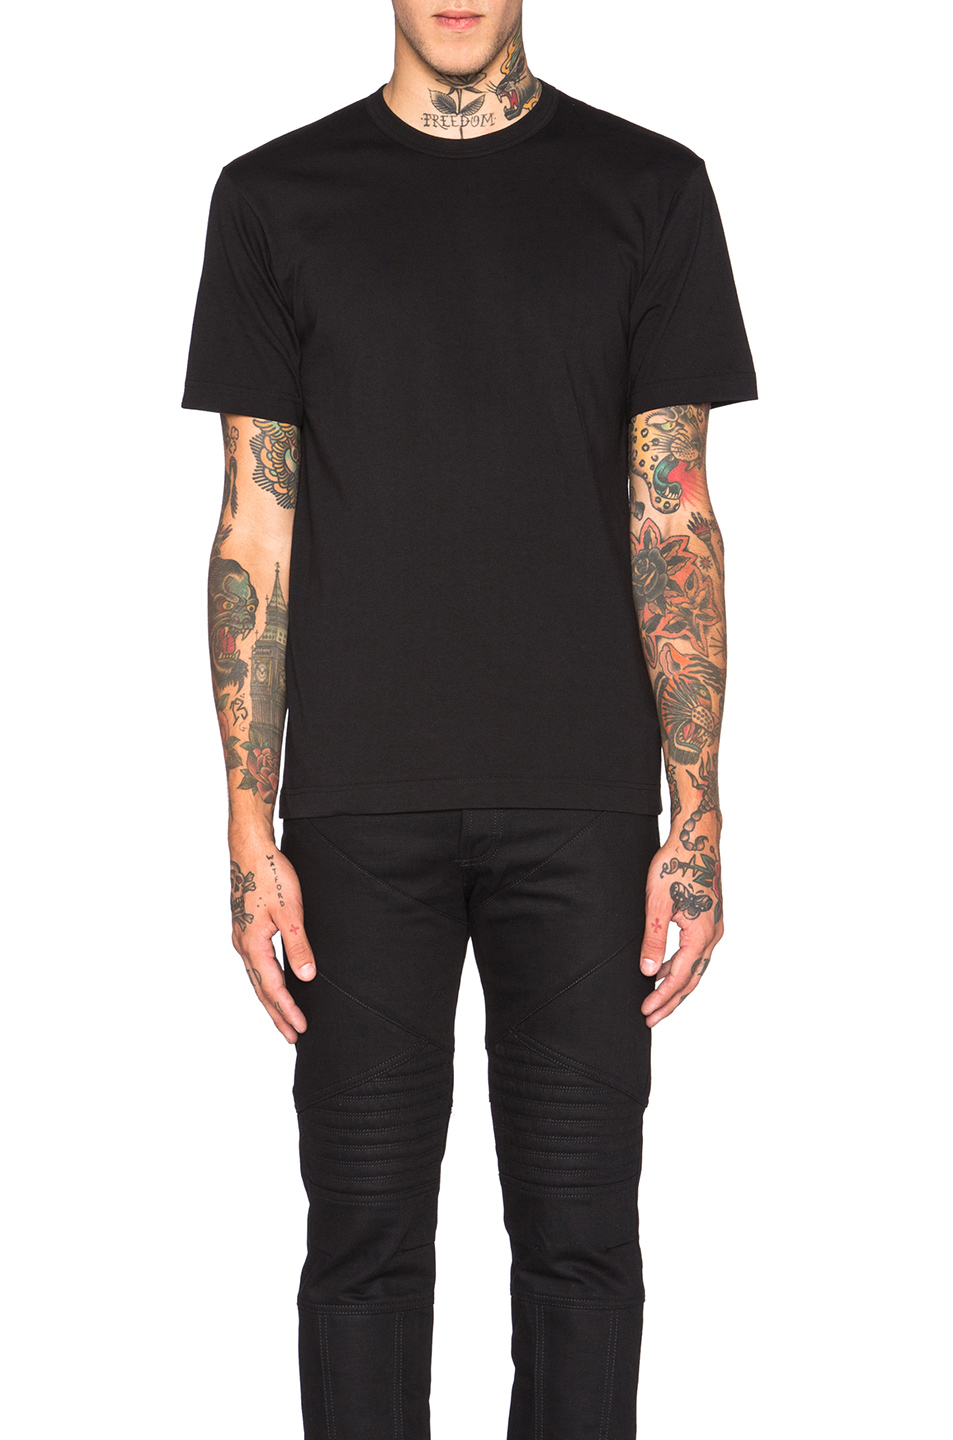 Comme Des Garcons SHIRT 'Forever' Cotton Tee in Black